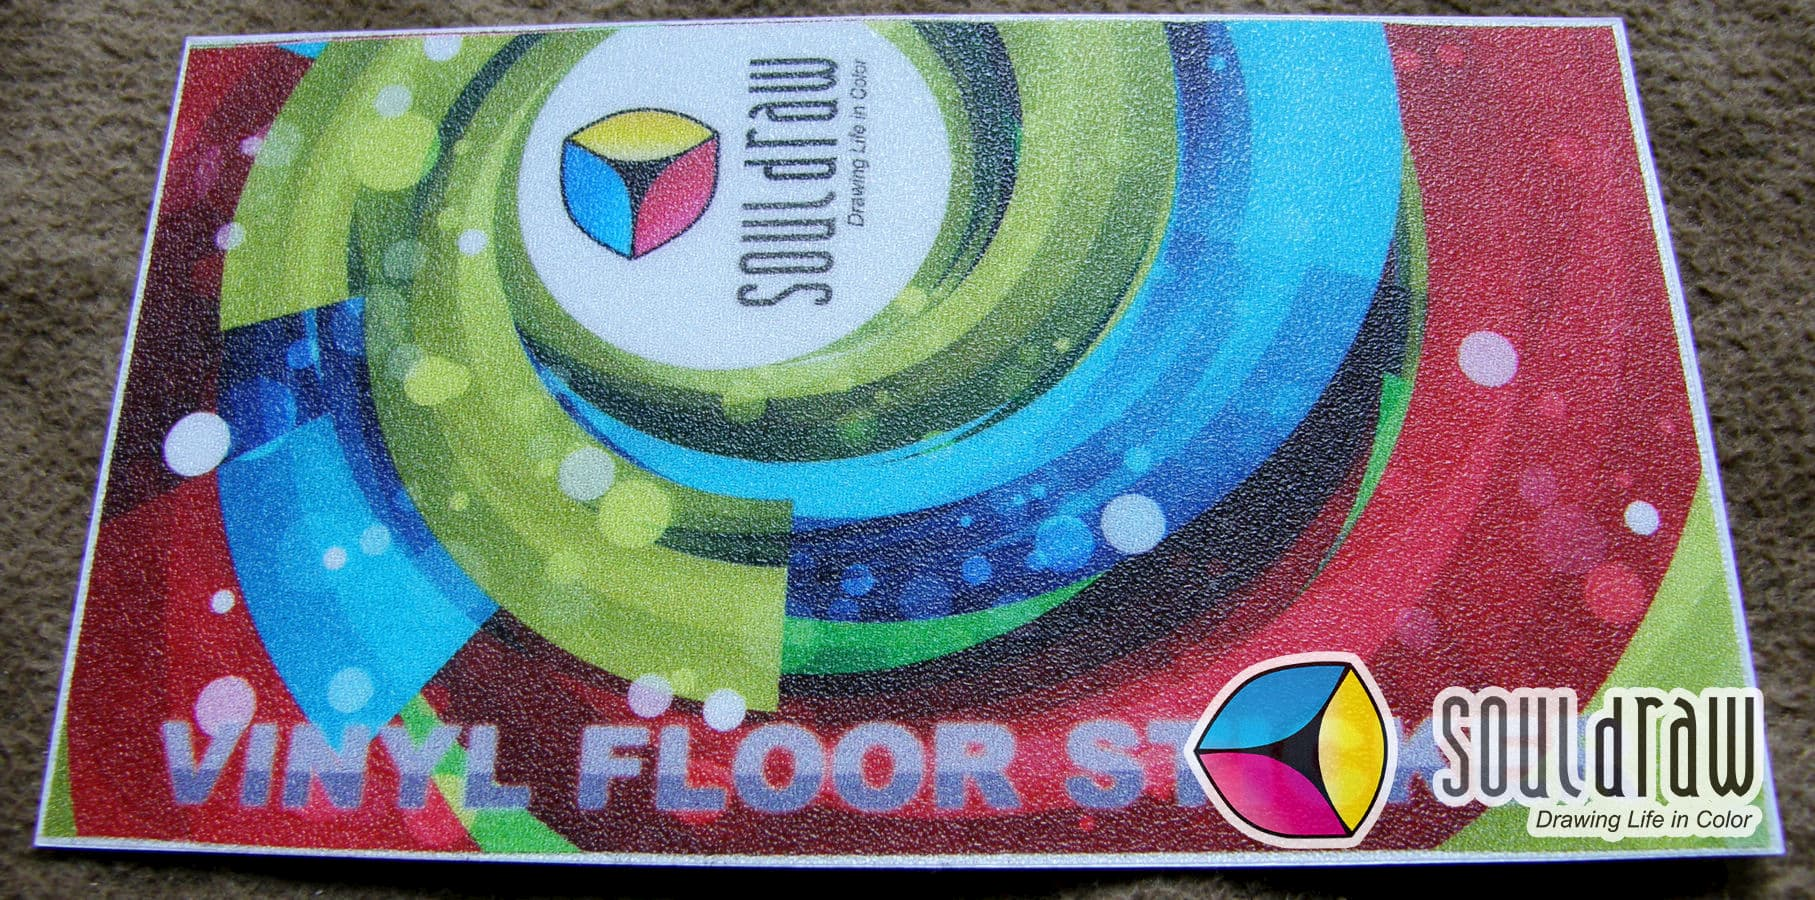 Non Skid Decal - Frosted Vinyl Floor Sticker